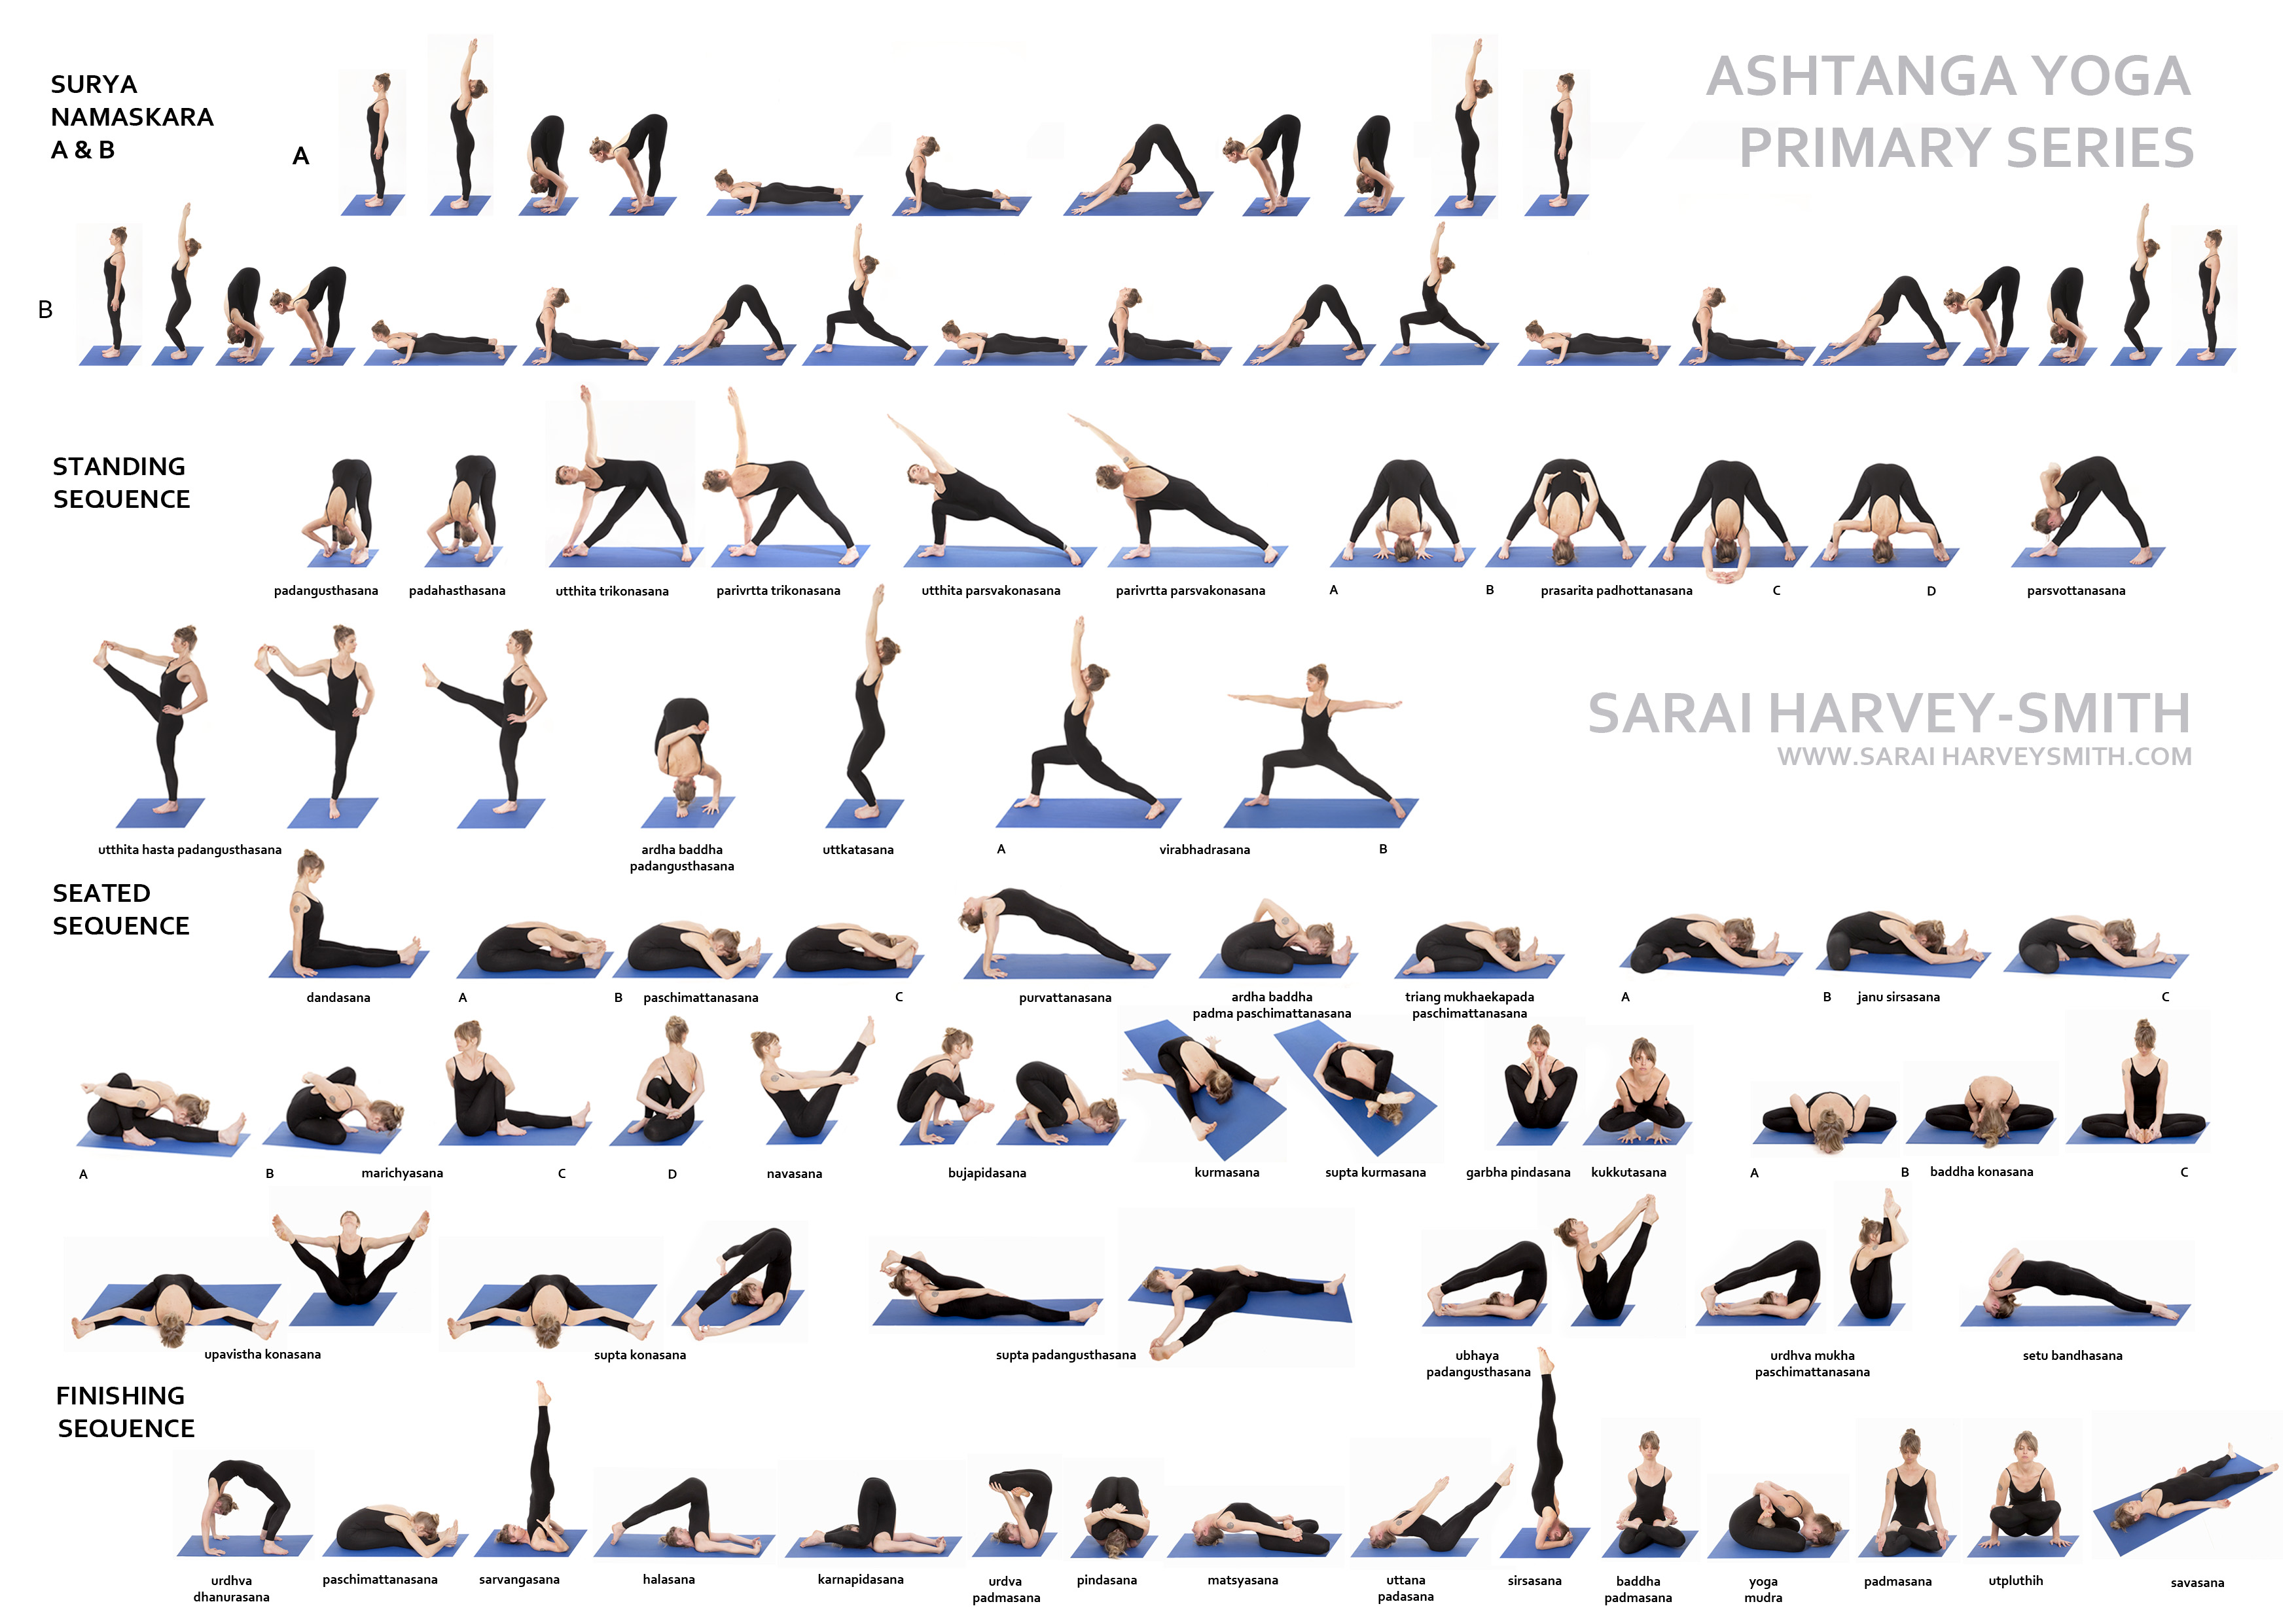 Ashtanga Yoga Poses Pictures - Work Out Picture Media ...